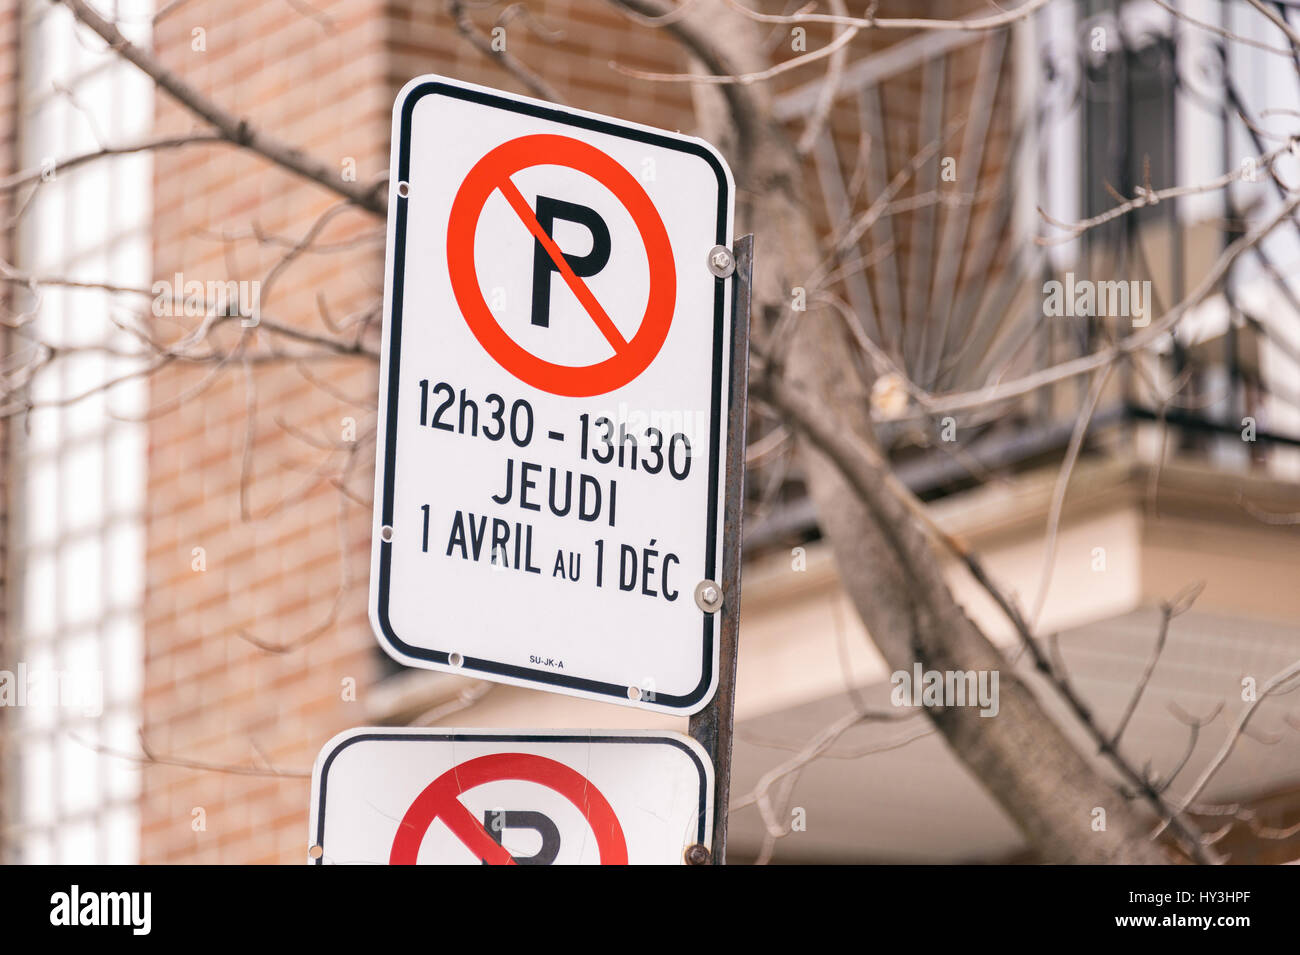 Montreal, CA - 31 March 2017: Street sign showing cleaning Schedule. - Stock Image